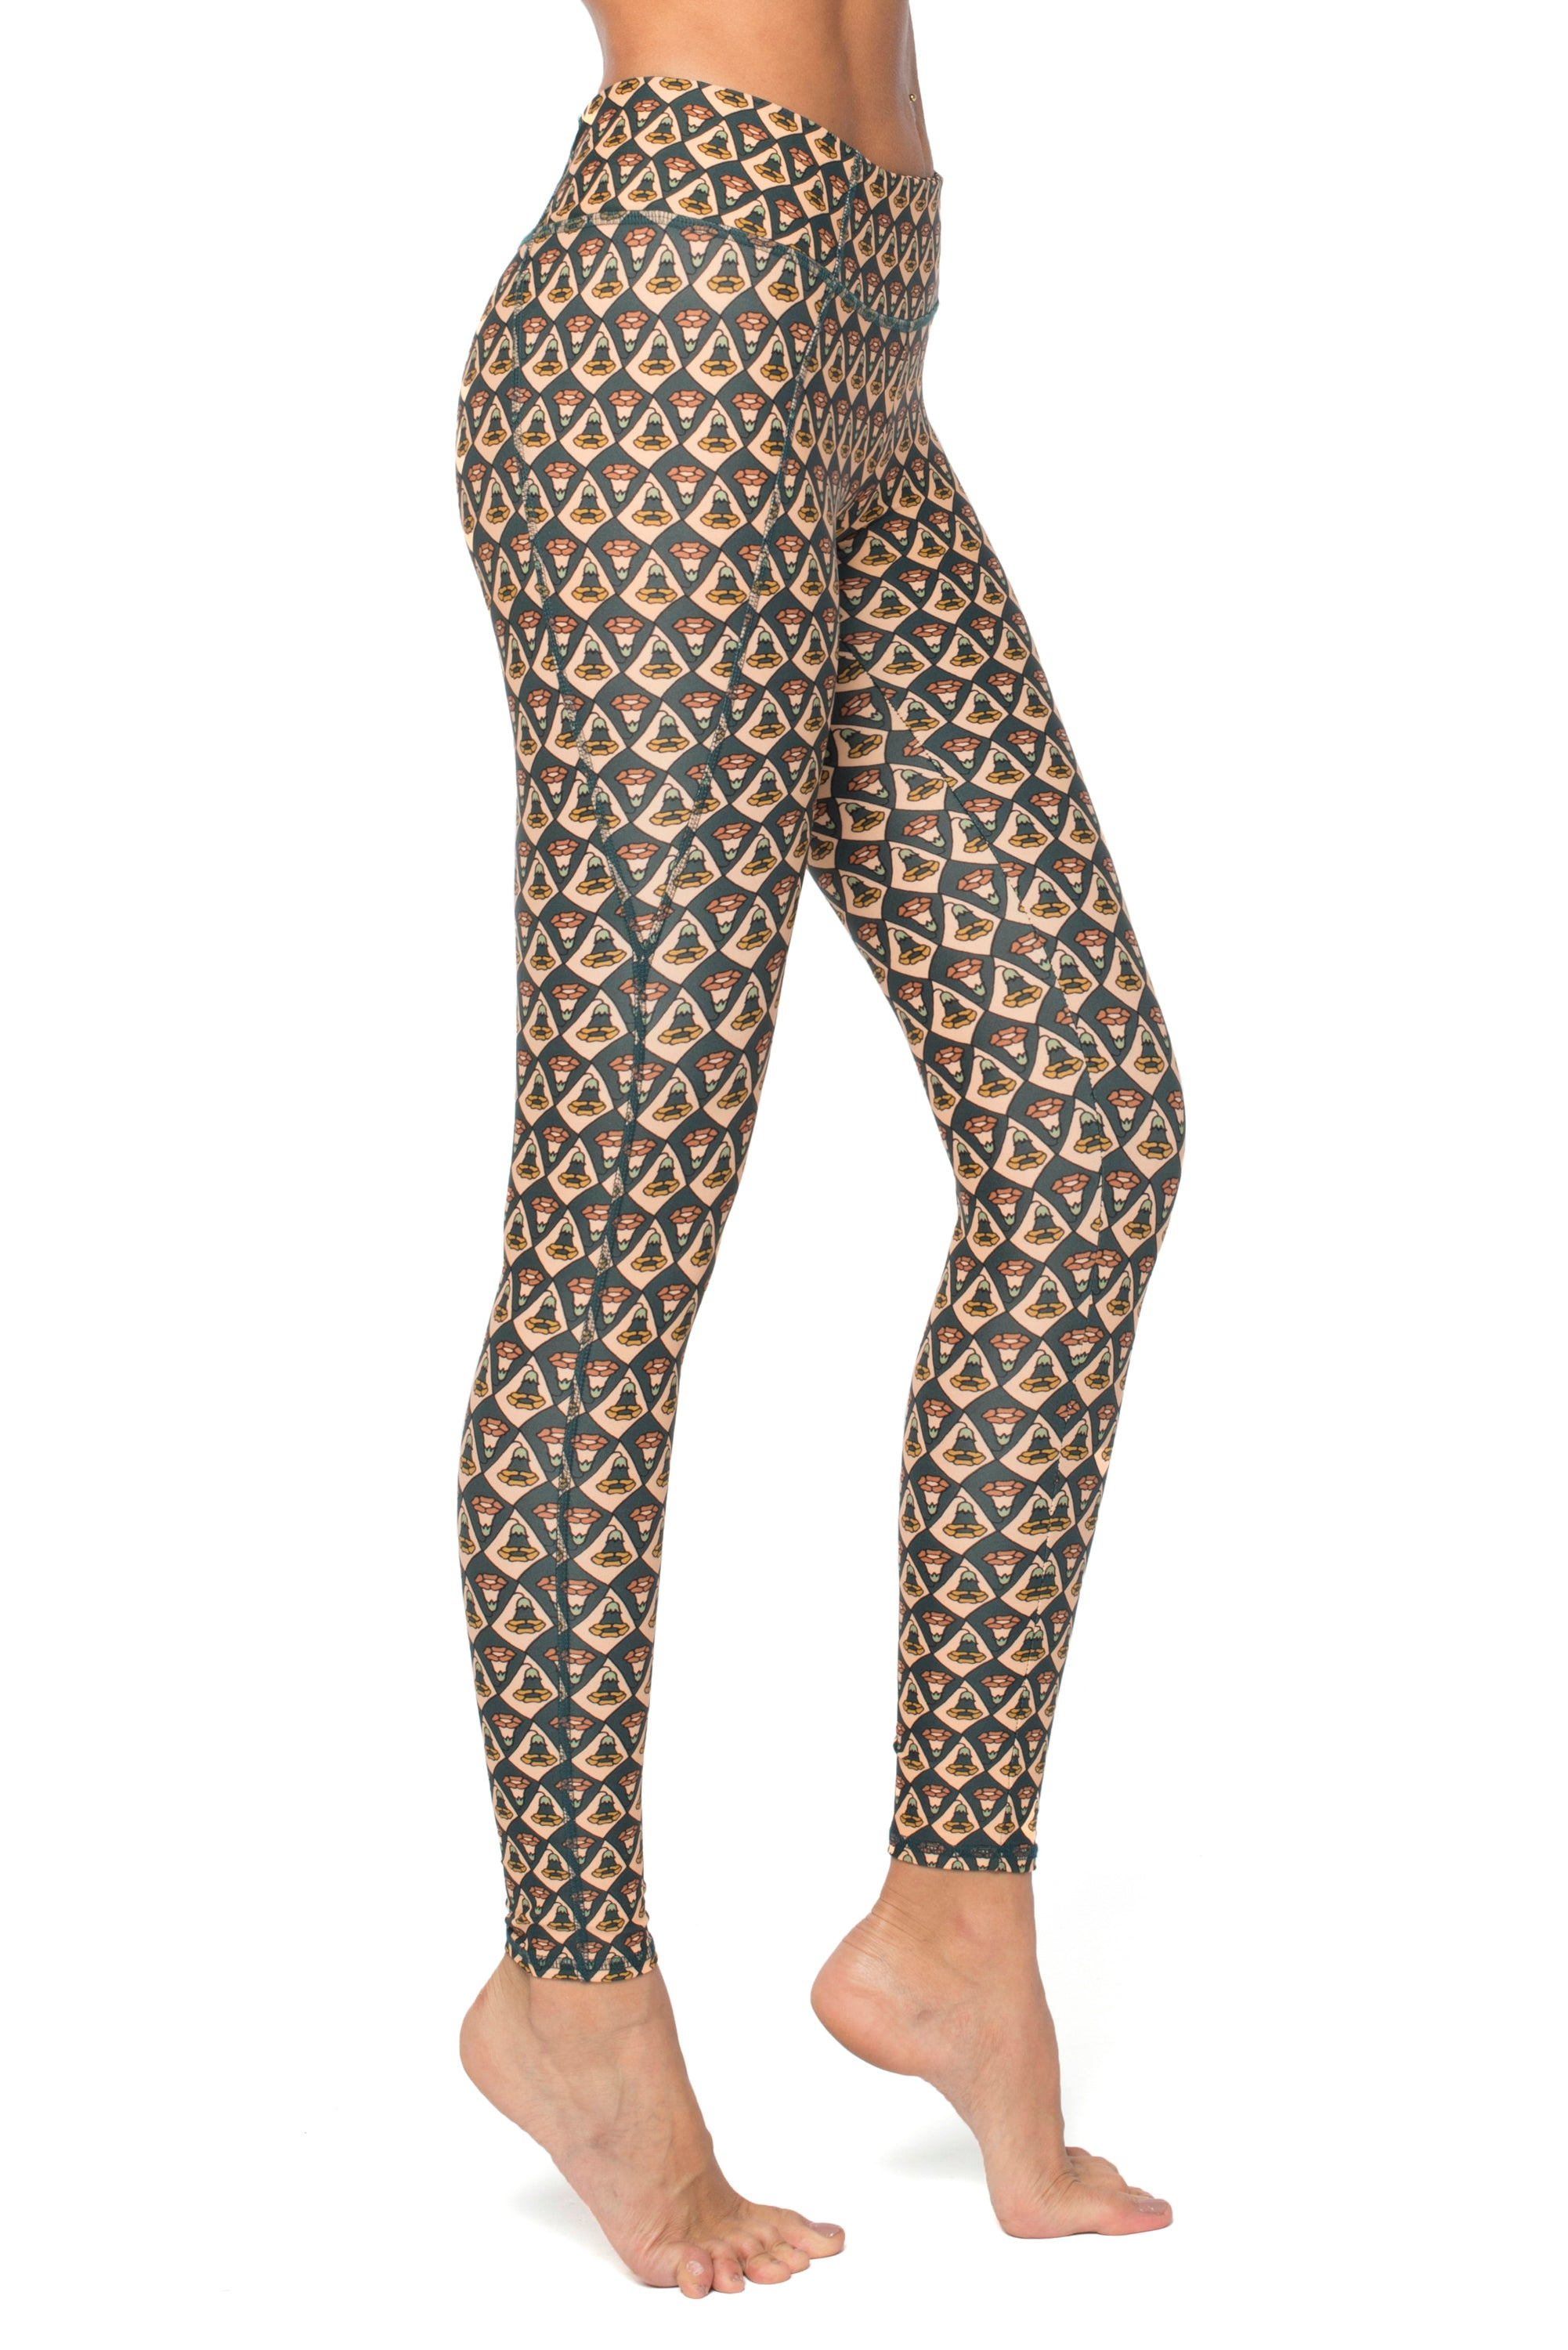 Fall Garden Legging